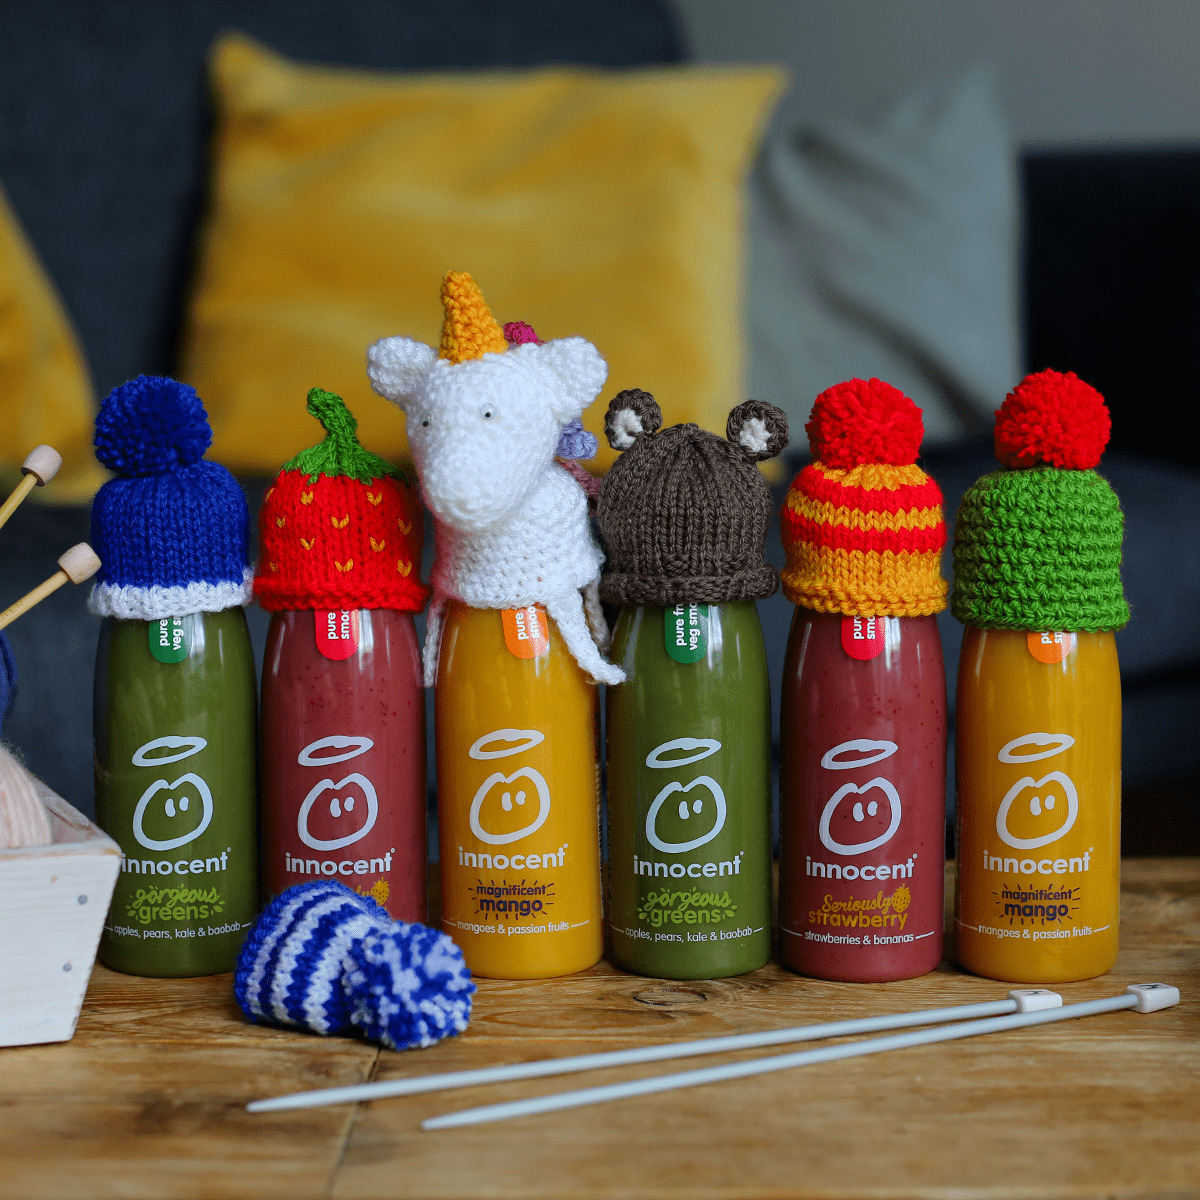 WHAT DO YOU GET WHEN YOU CROSS A DINOSAUR, LION, UNICORN AND A DUCK? THE BIG KNIT OF COURSE!